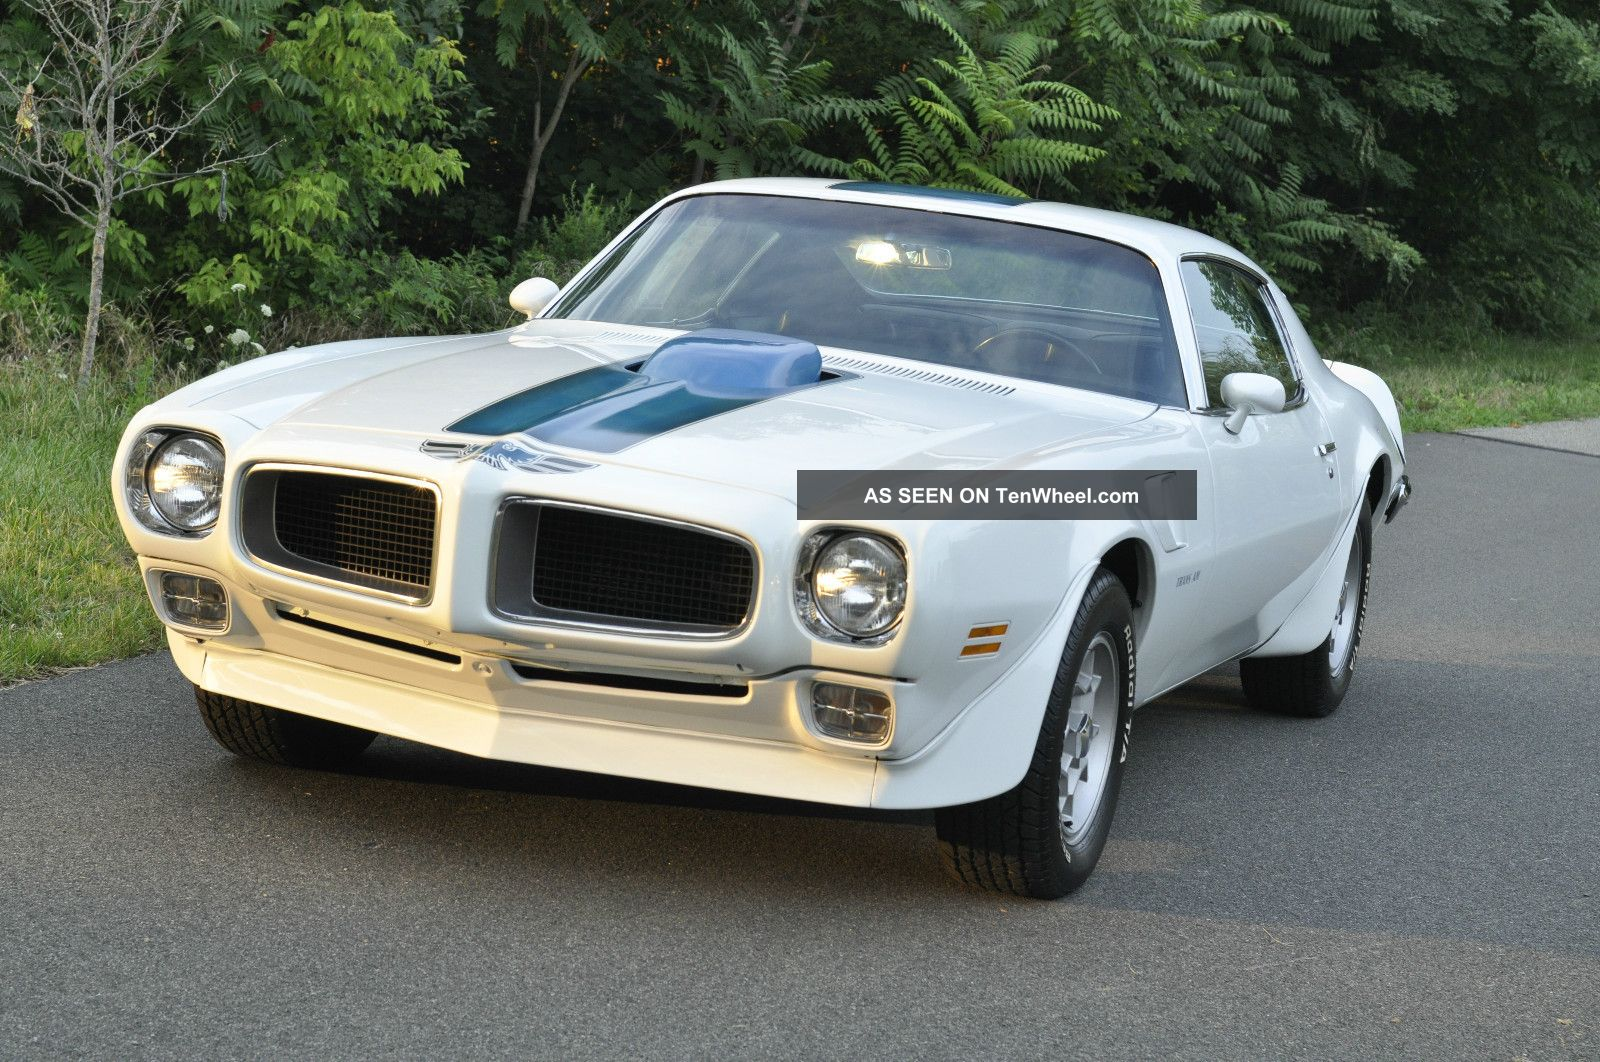 18091 1970 1  2 pontiac trans am   frame off restoration on trucks with a 440 magnum engine